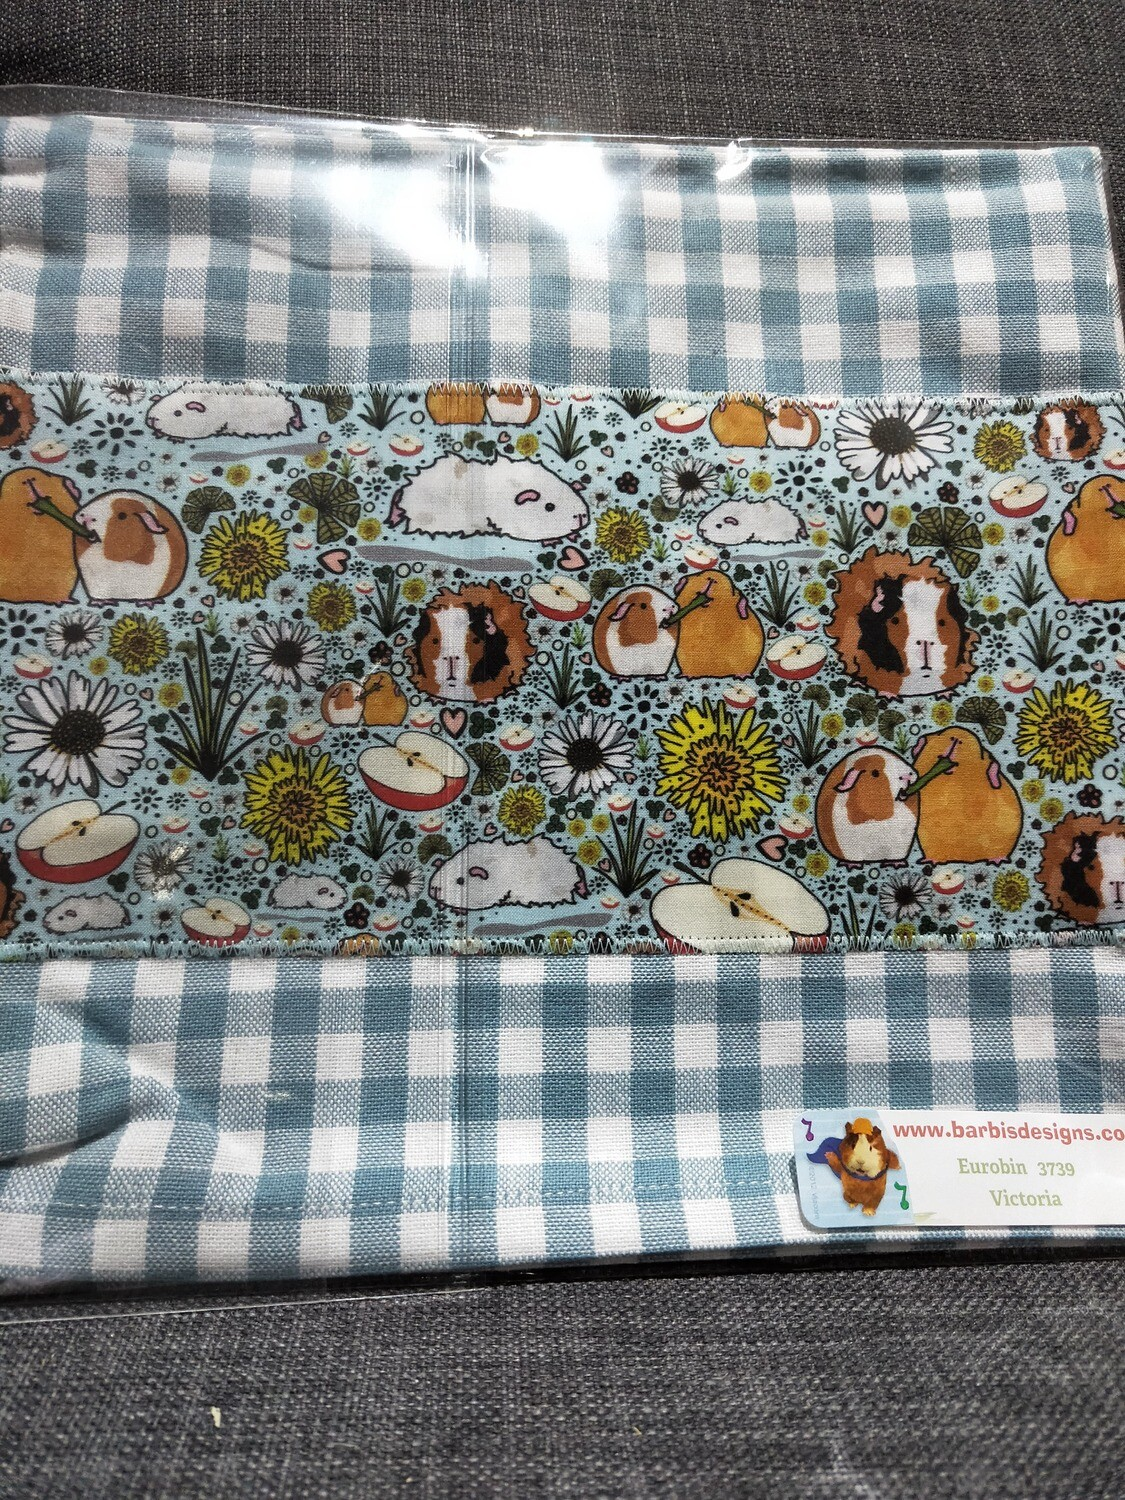 Barbi's Design - Guinea Pig Tea towel 3